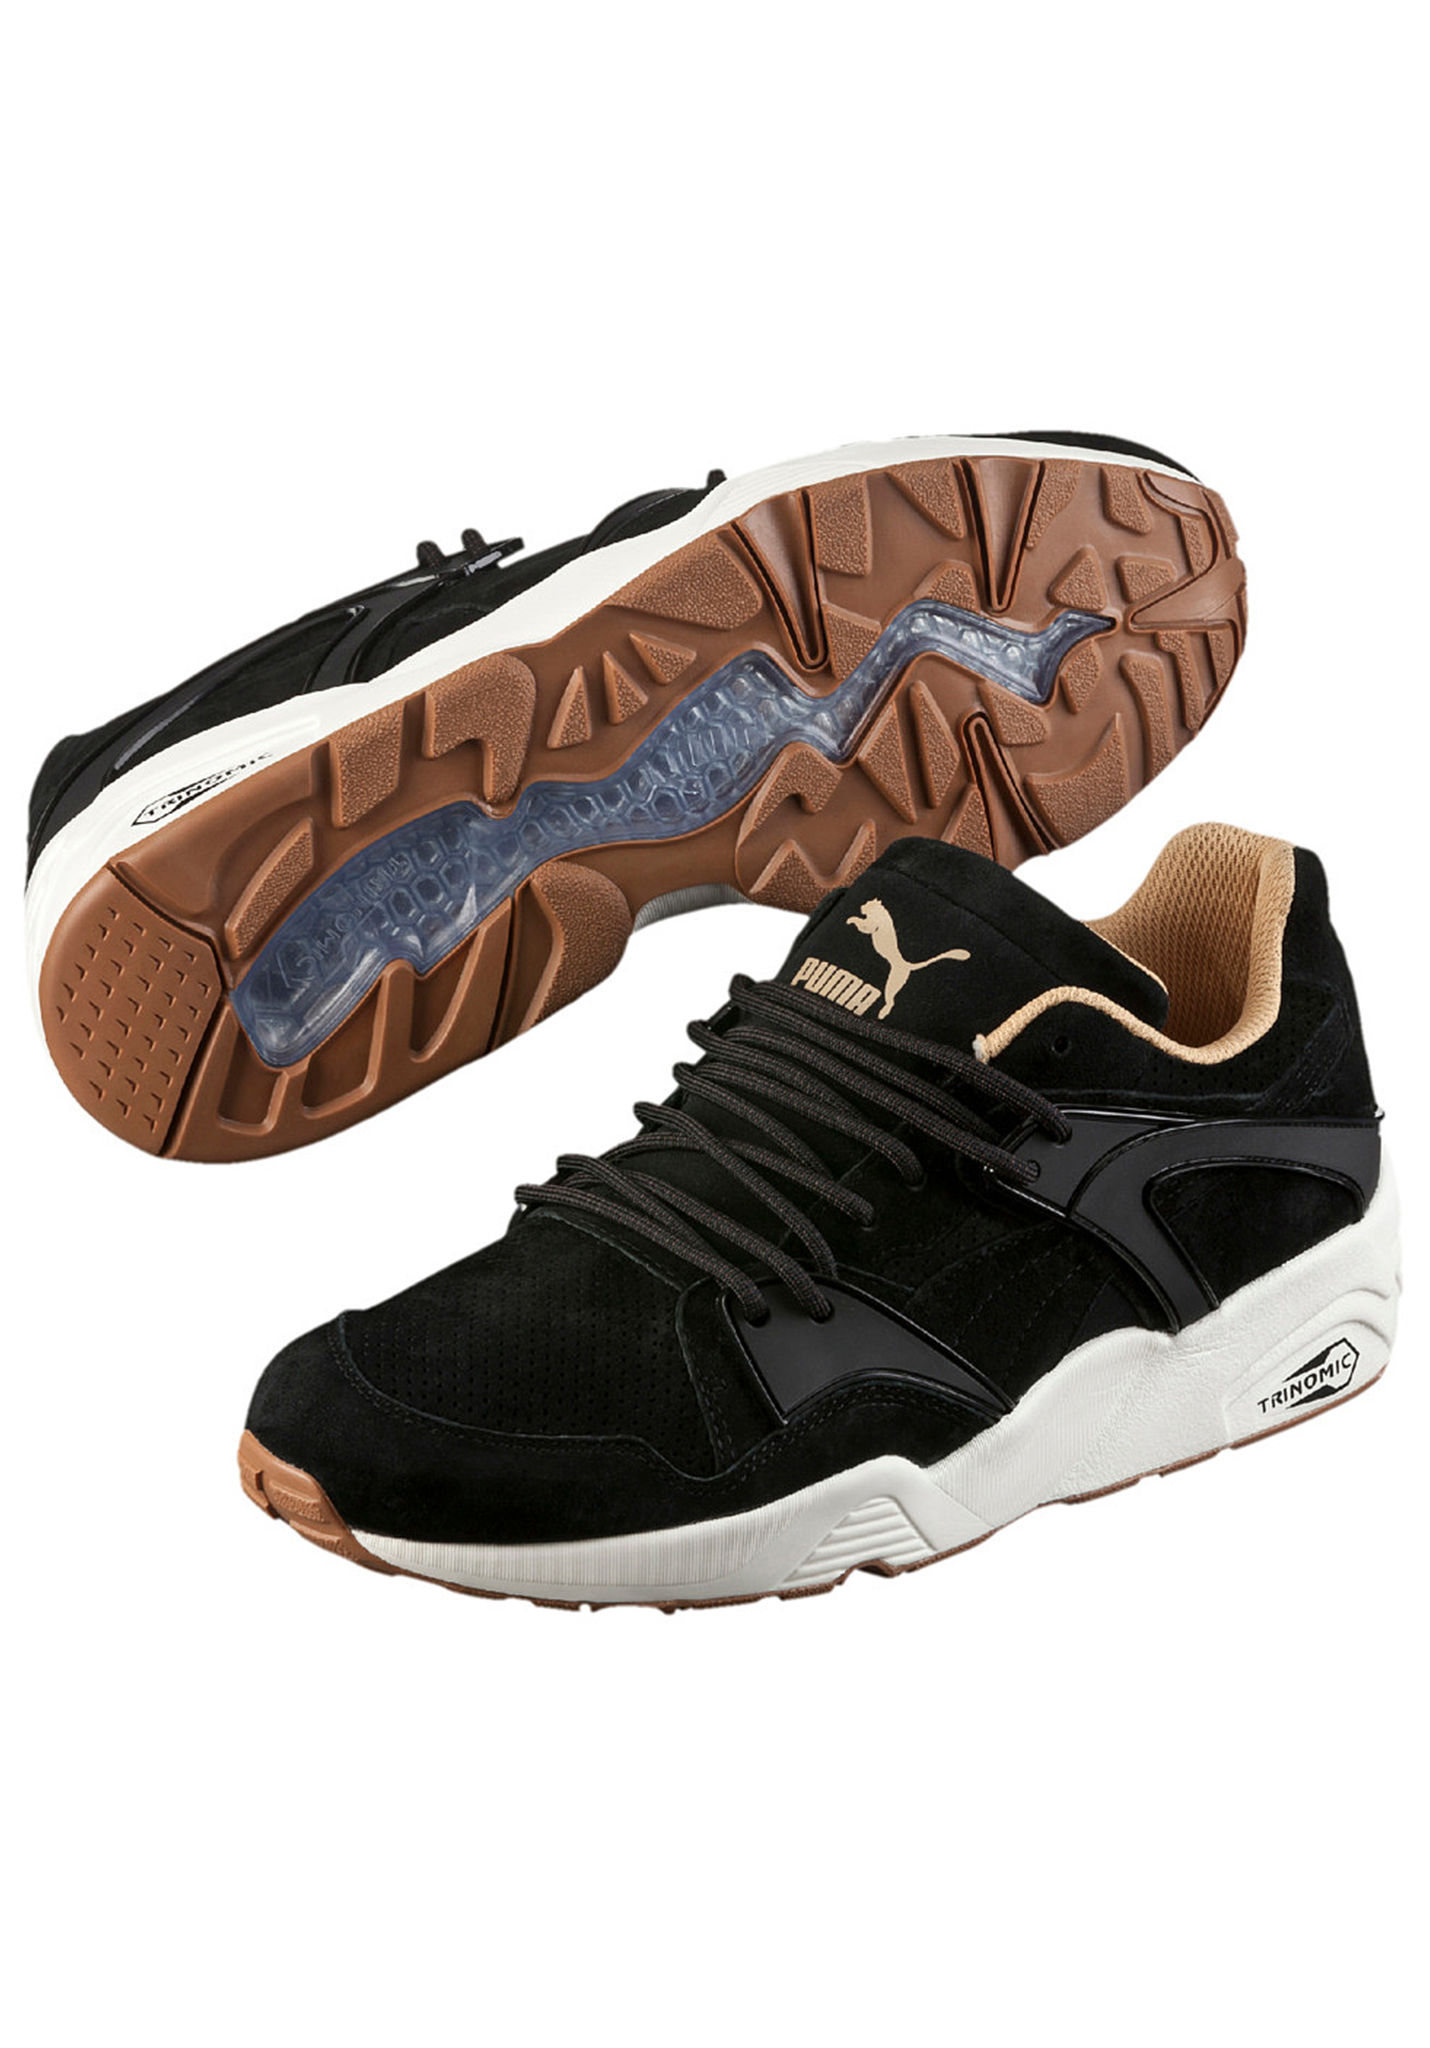 24b929aaf3e06 Puma Blaze Winterized - Baskets - Multicolore - Planet Sports